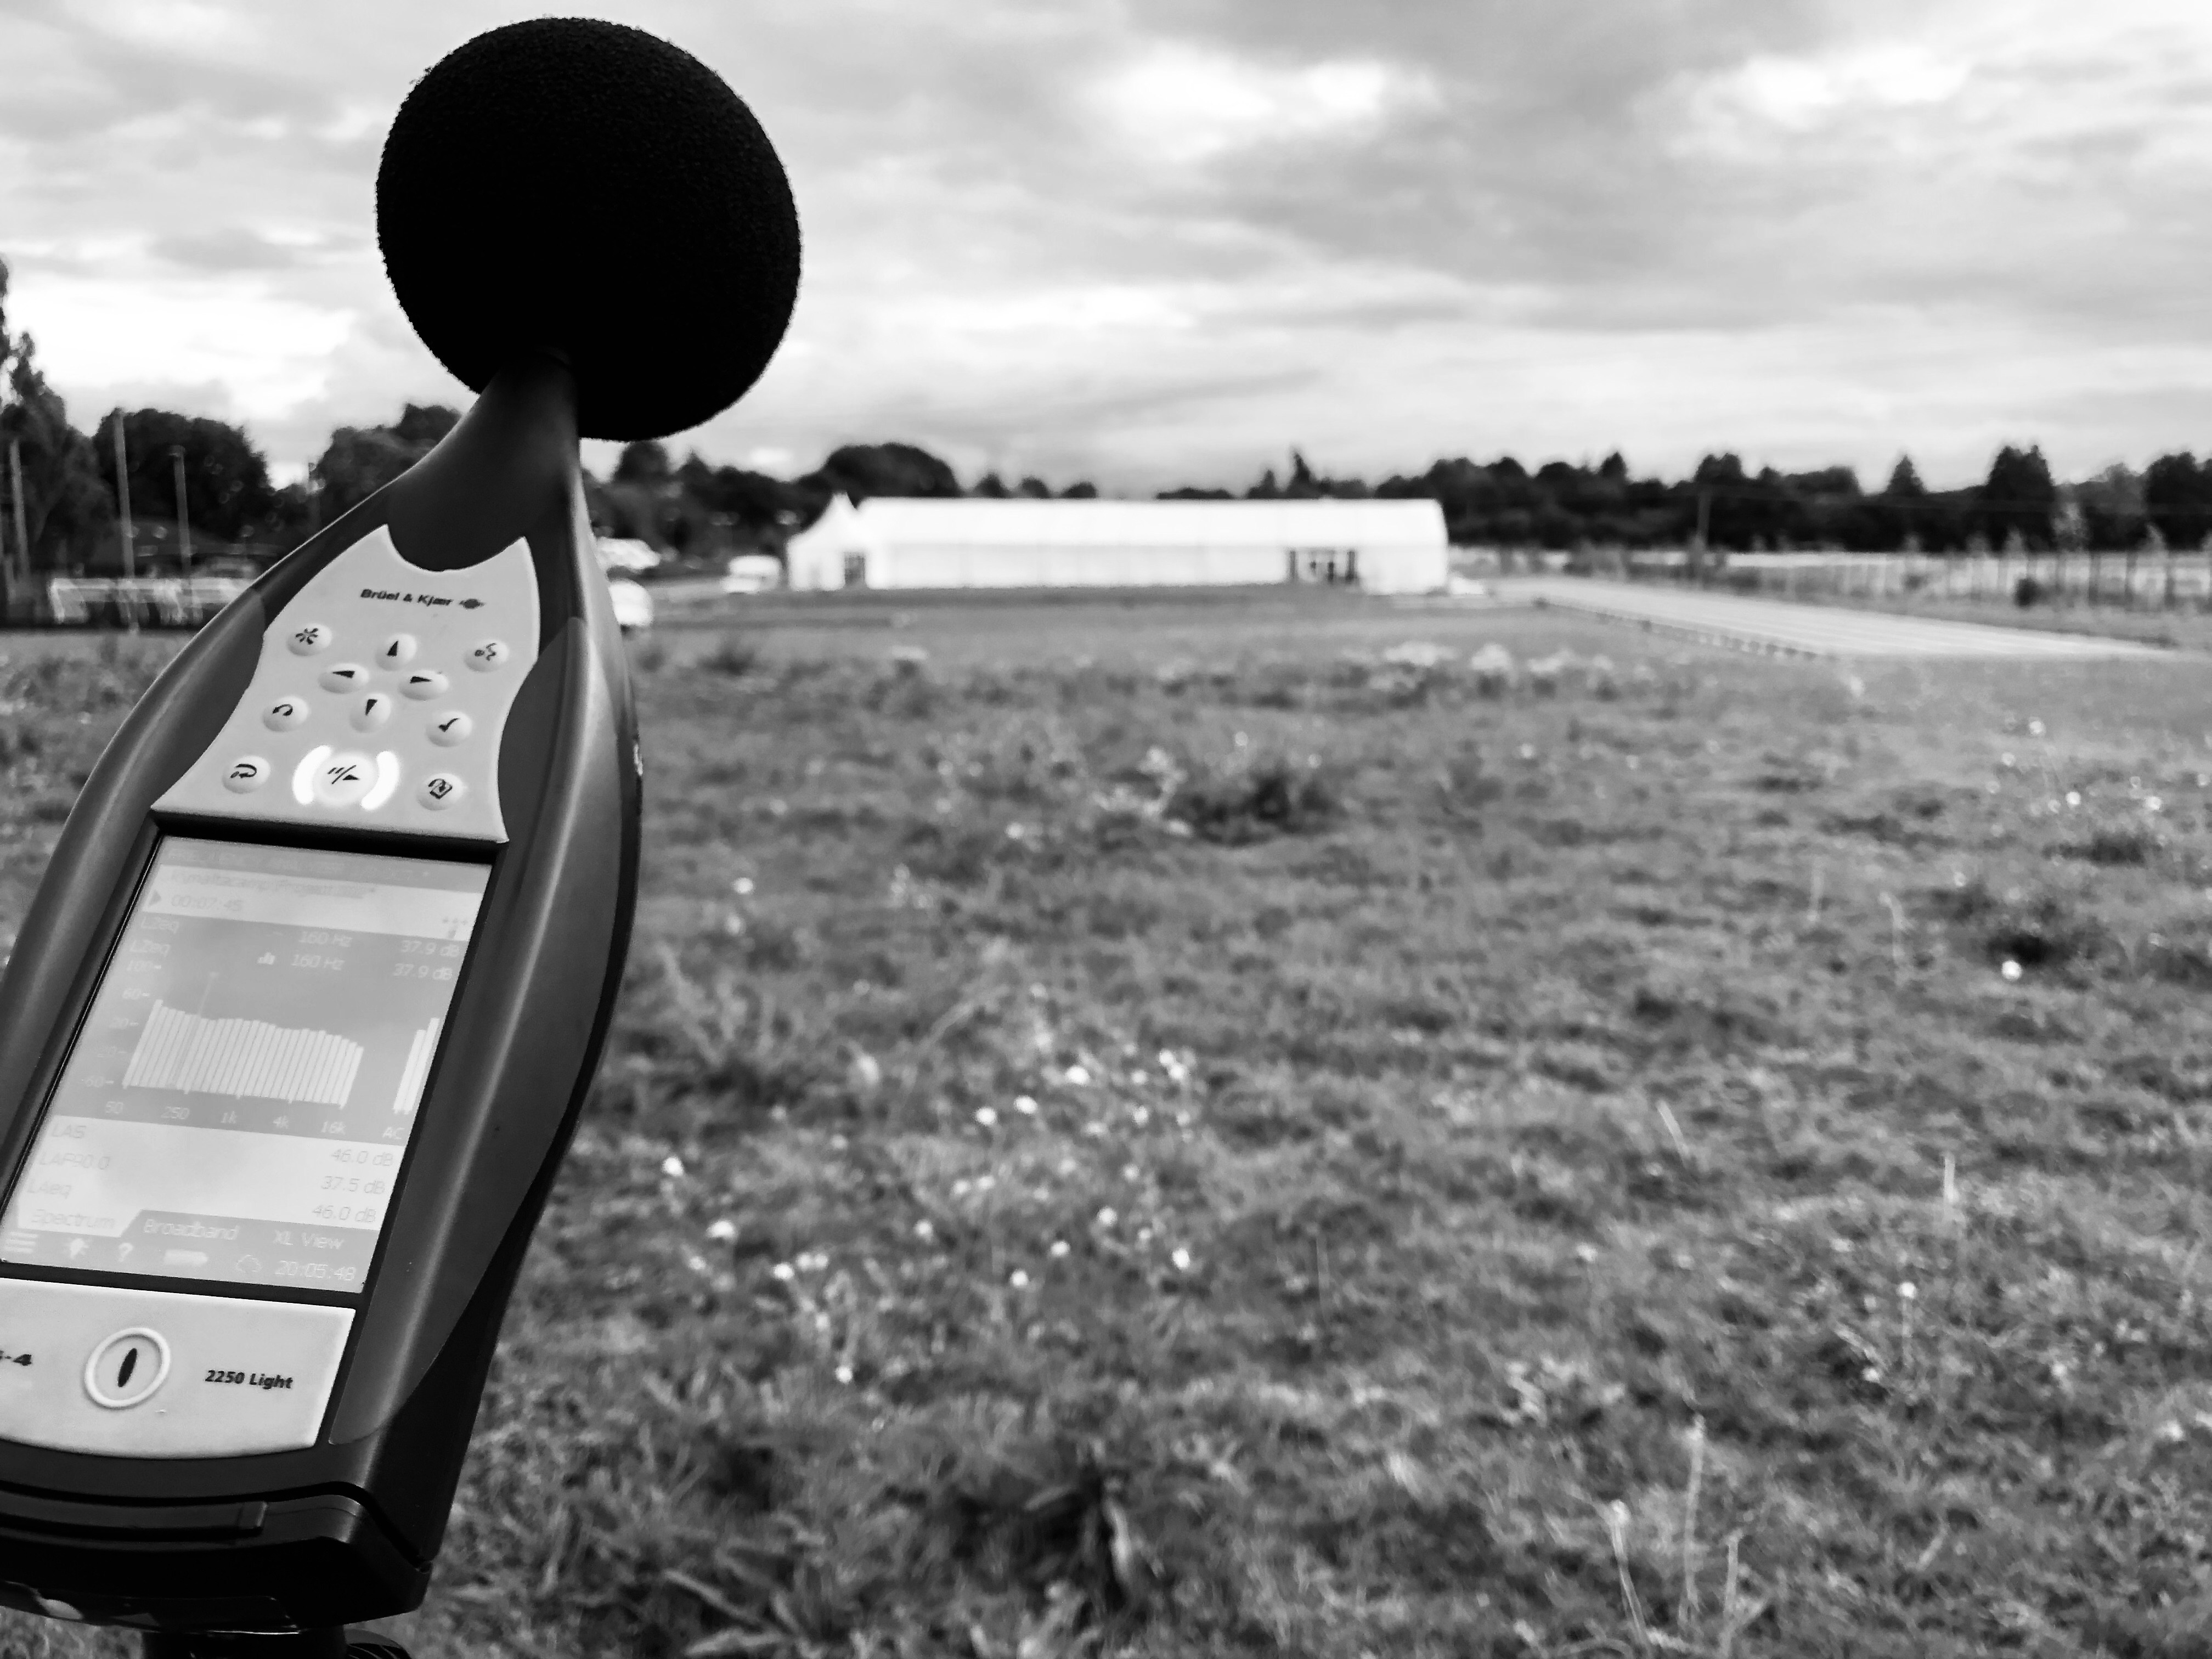 black and white sound reading device in foreground with blurred marquee in background